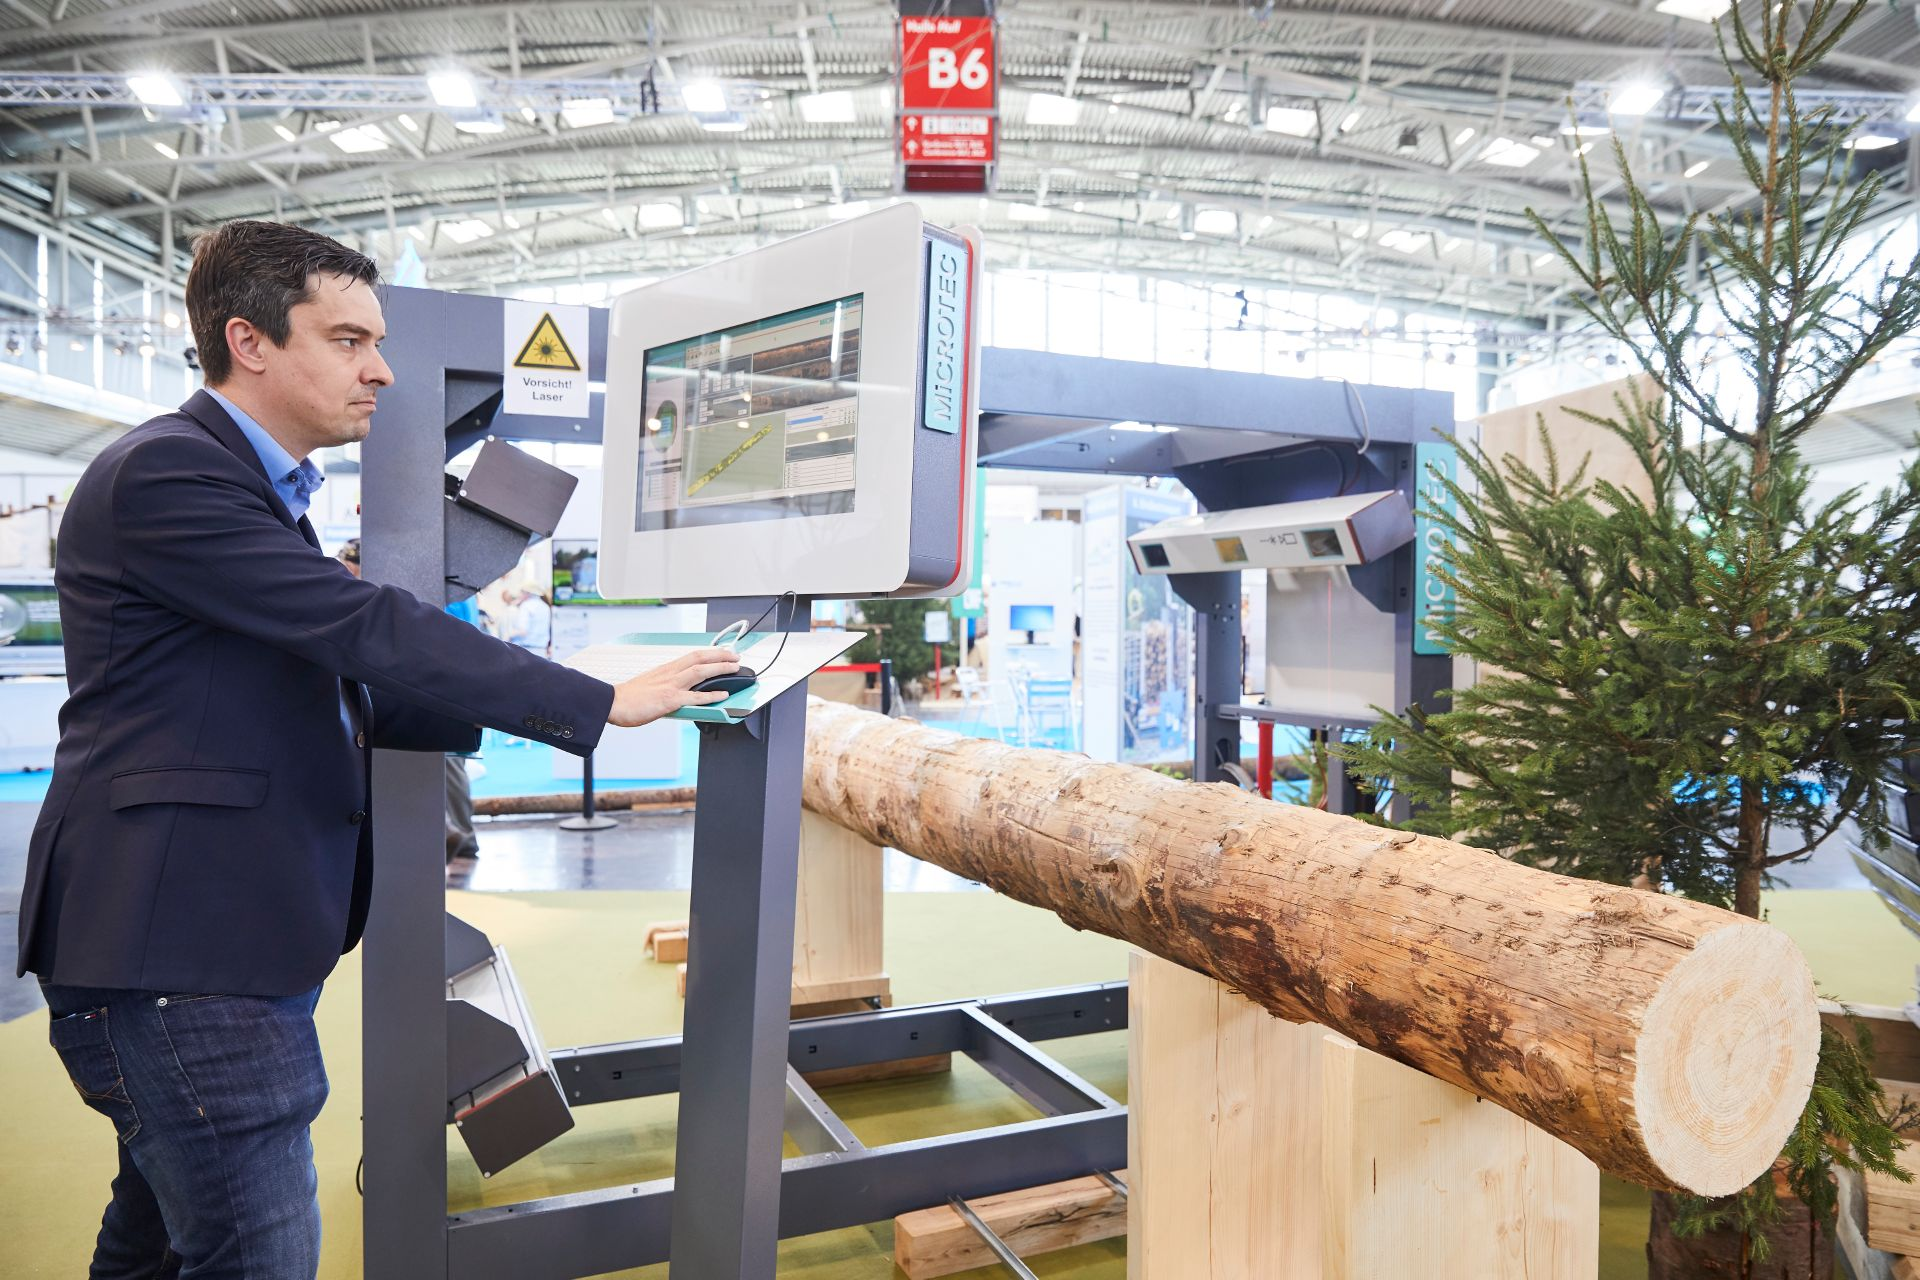 Forestry 4.0 - Digitalization in the Forest Industry